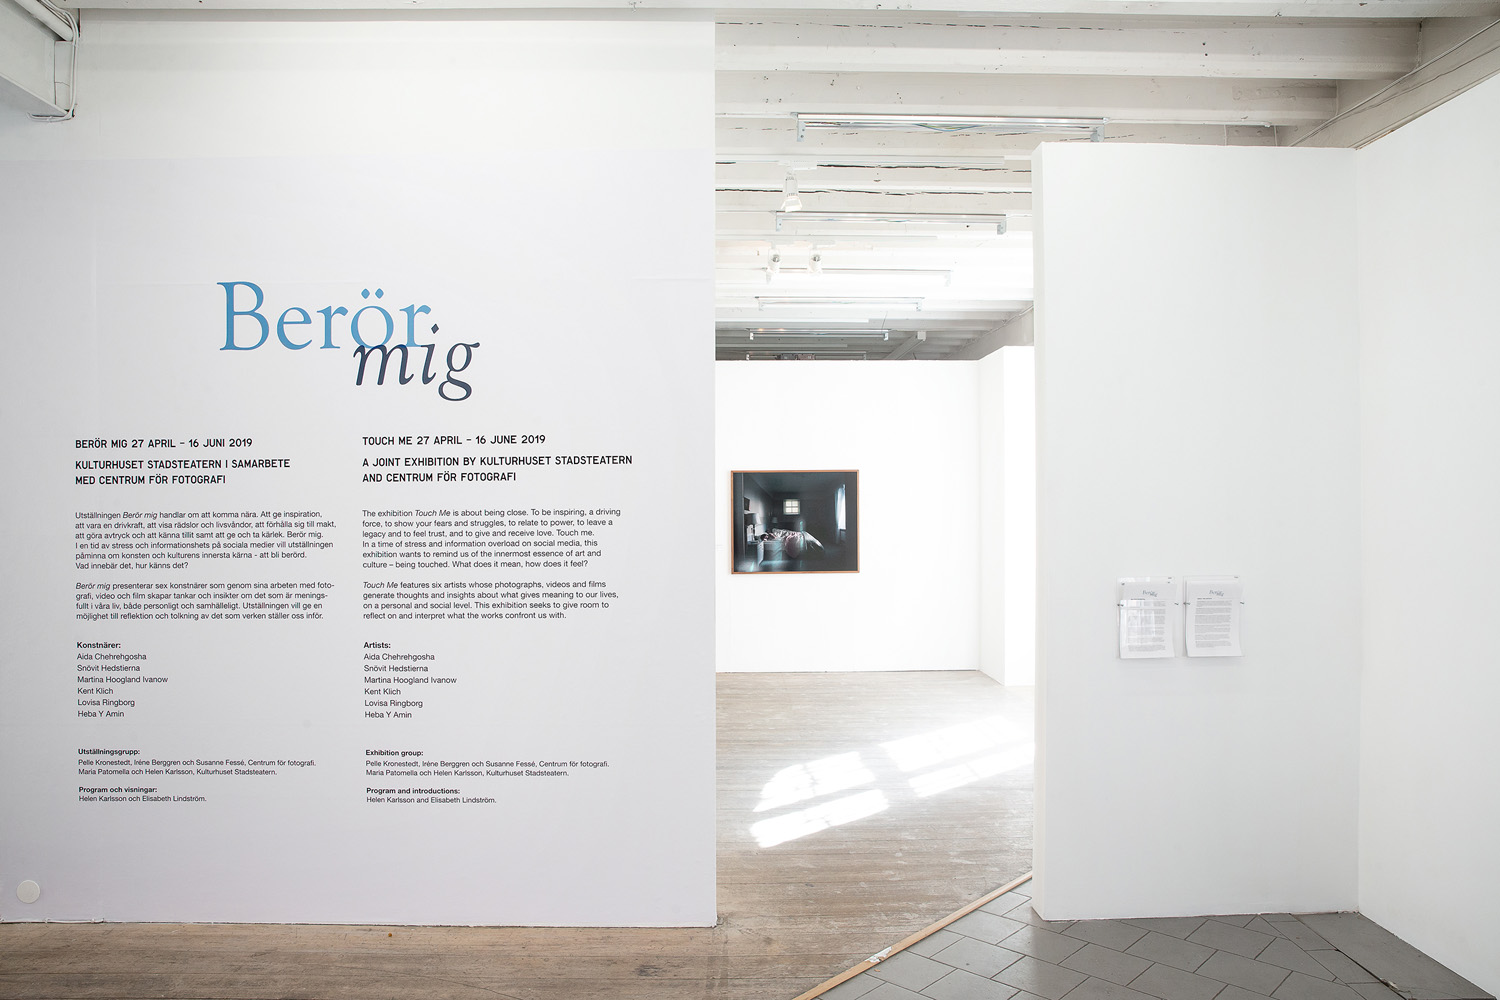 beror-mig-installation-shots_G4Z6363_press.jpg